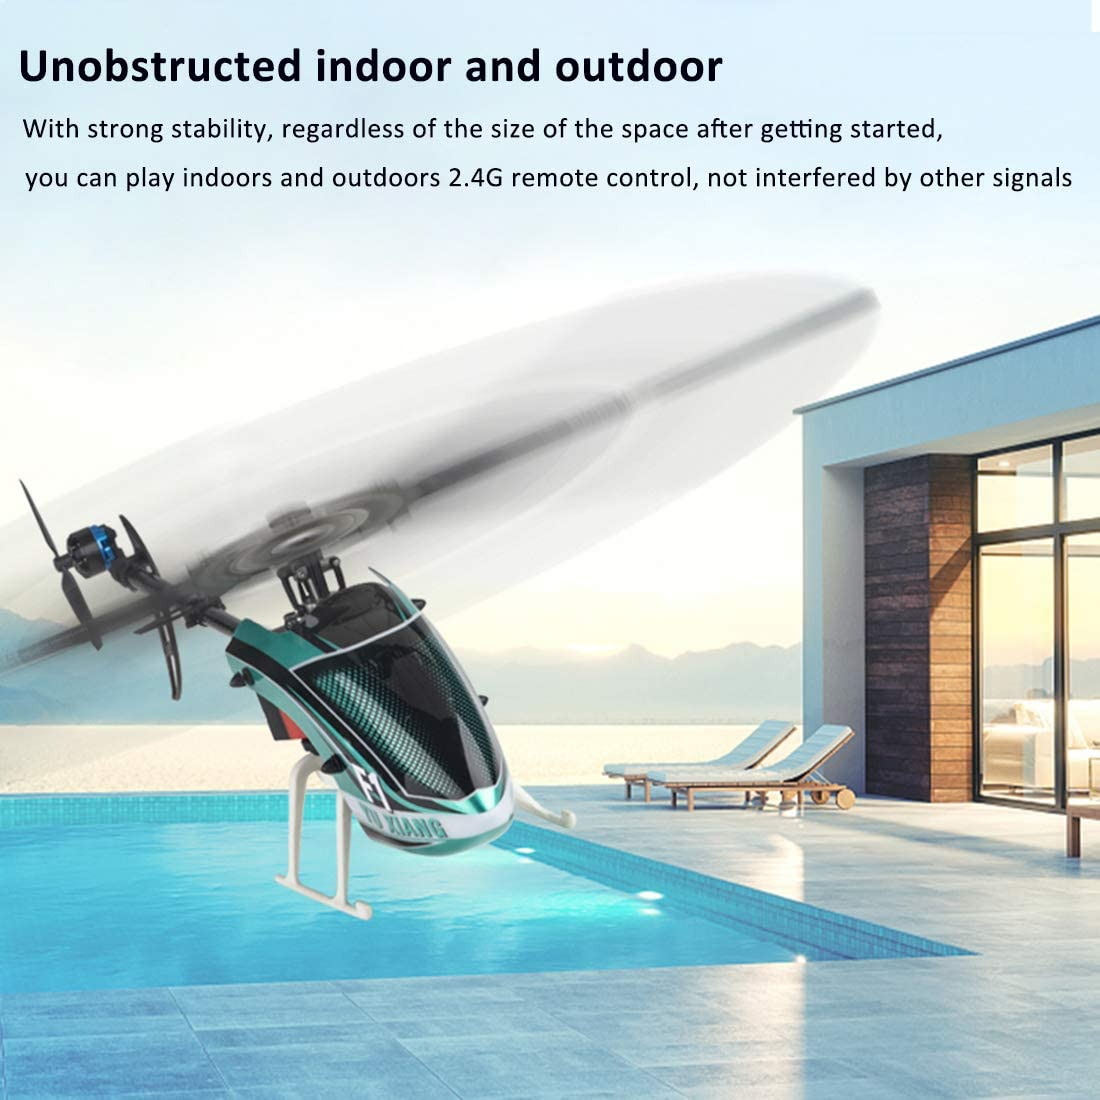 Trueornot RC Airplane 2.4G 6CH Electric Remote Control Rotor Helicopter with 6G Self-stabilized Flight Mode and 3D Stunt RTF